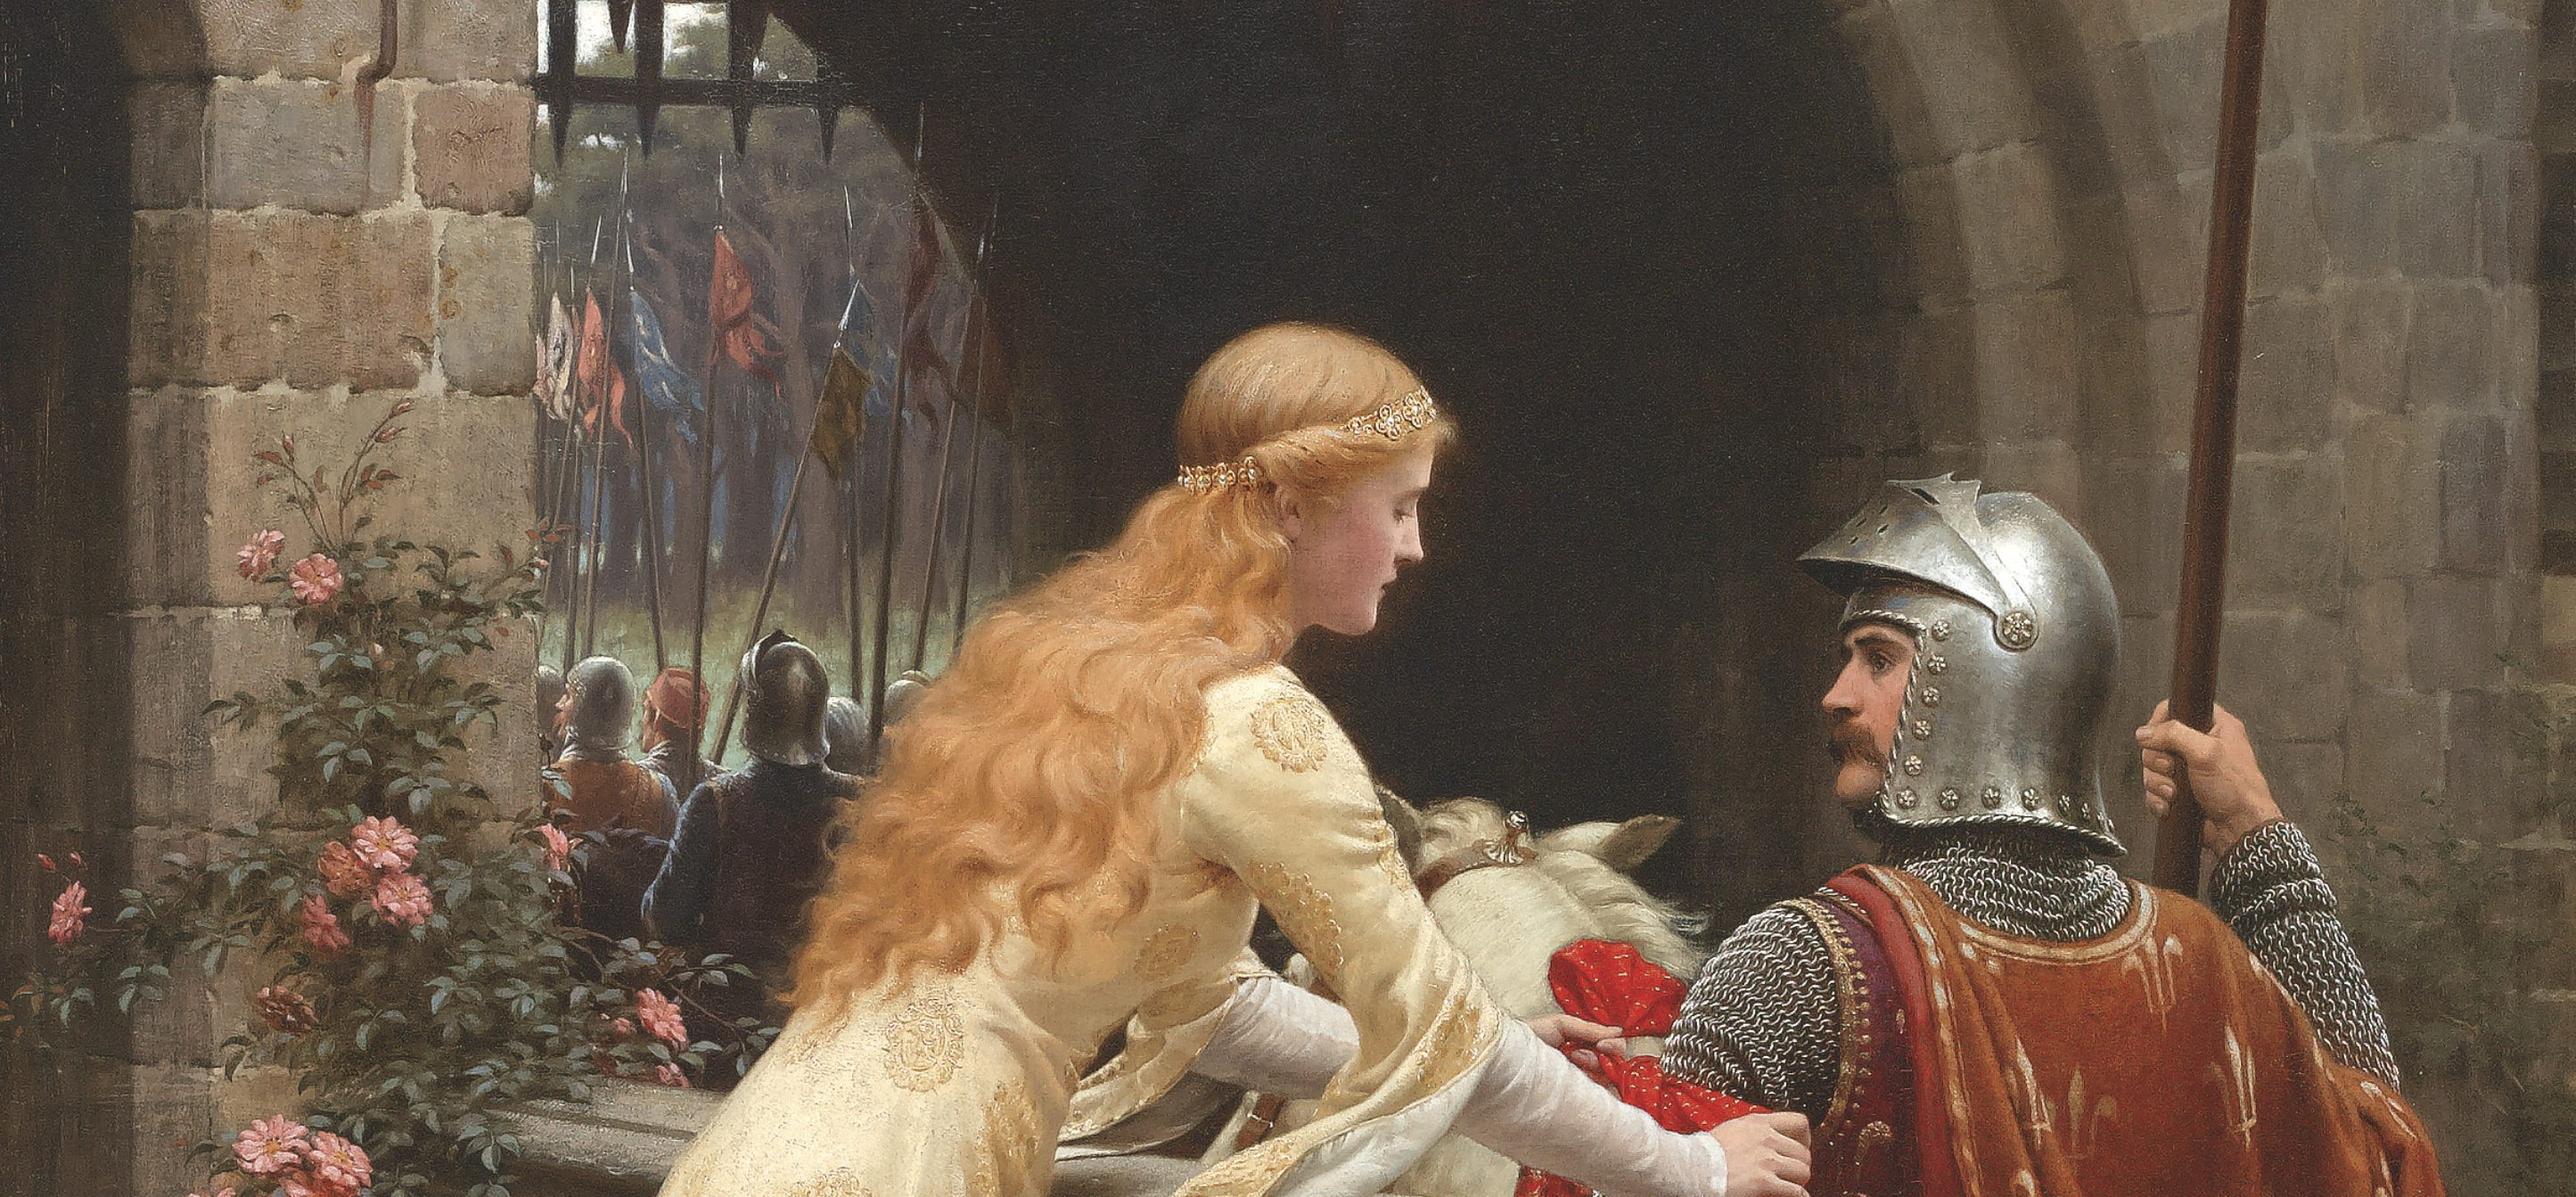 Victorian painting of a knight leaving on crusade